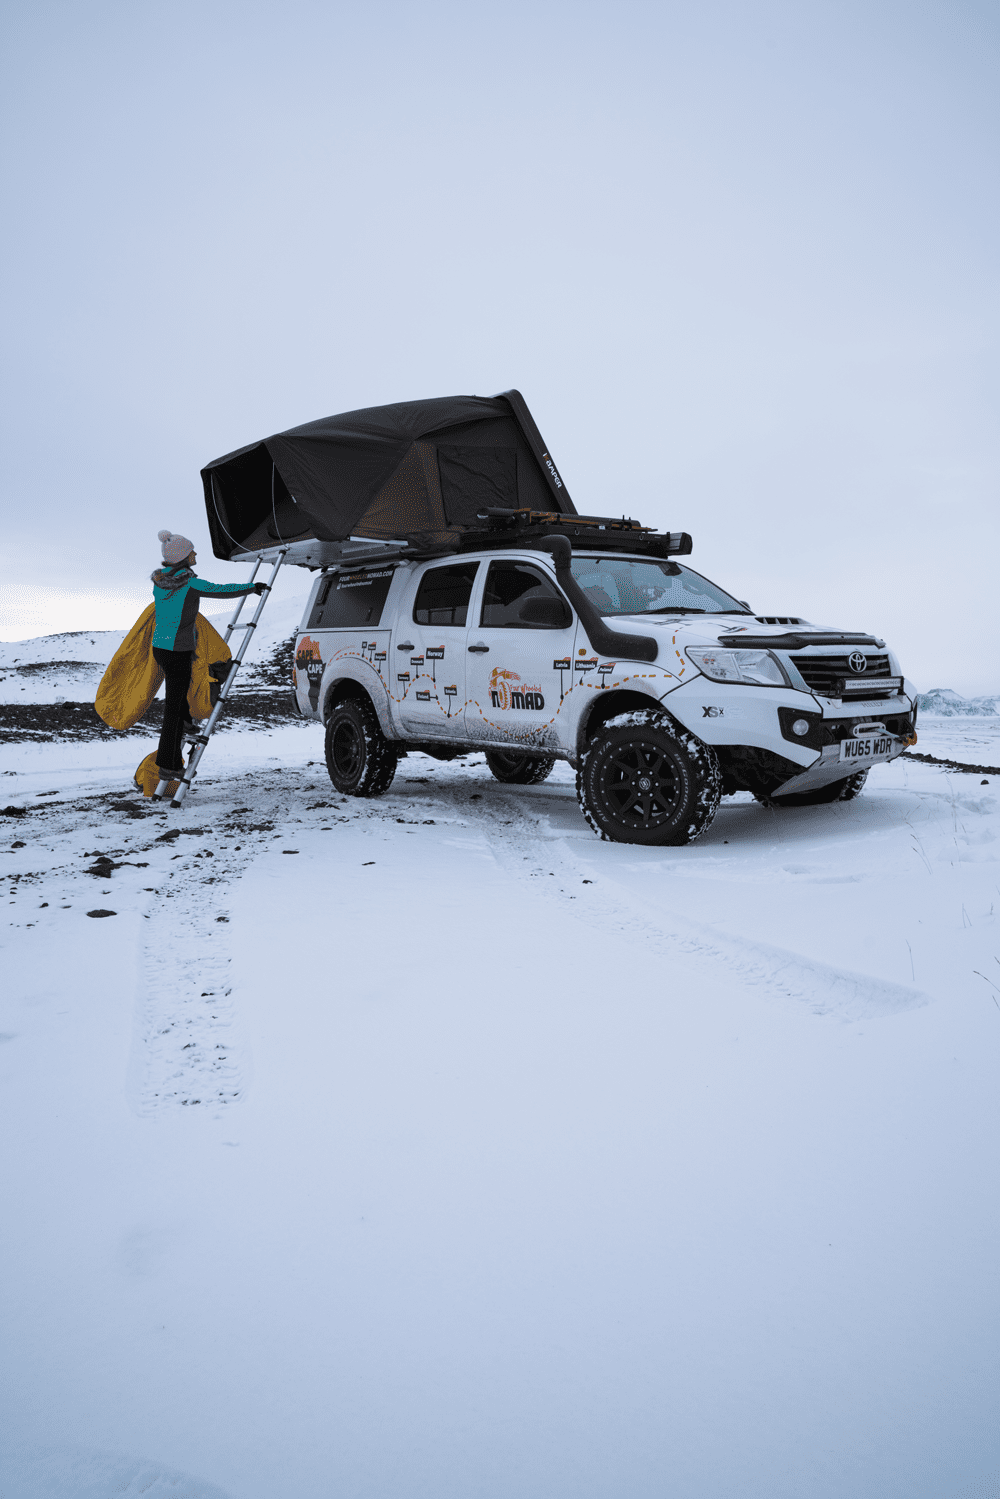 Toyota Hilux during 4WD camping journey